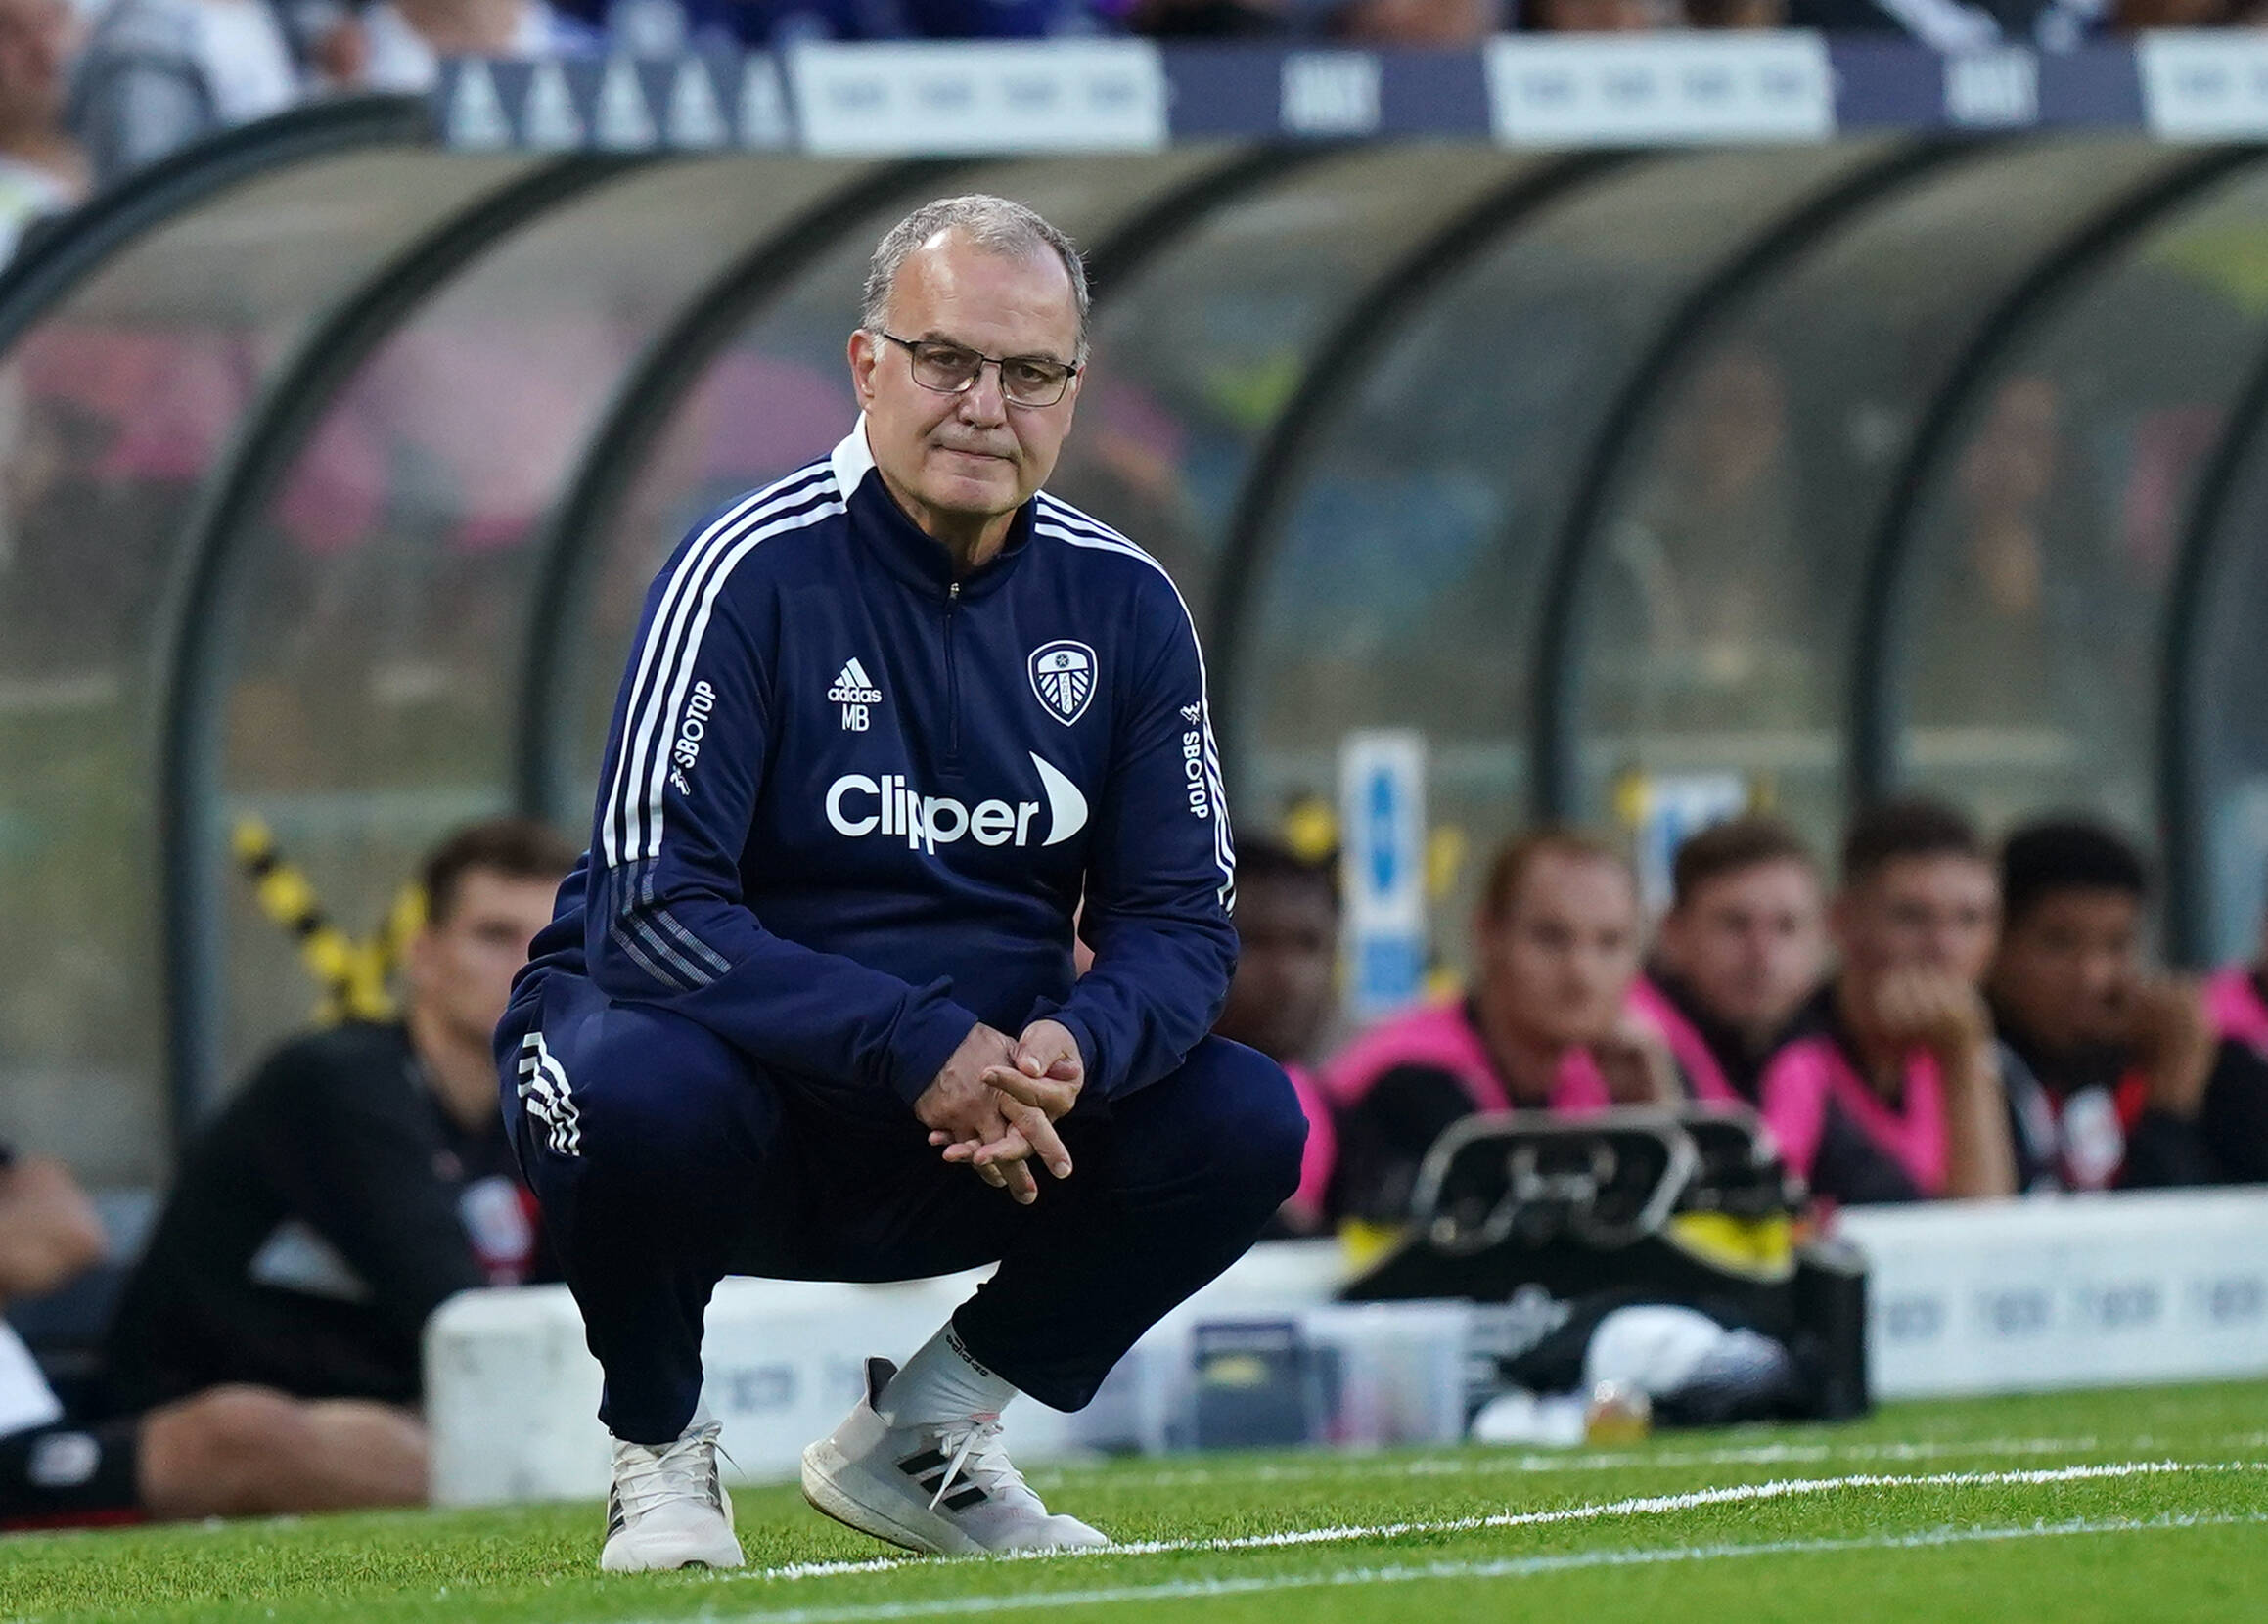 Leeds United Vs Liverpool Tactical Preview (Leeds United boss Marcelo Bielsa is seen in the picture)